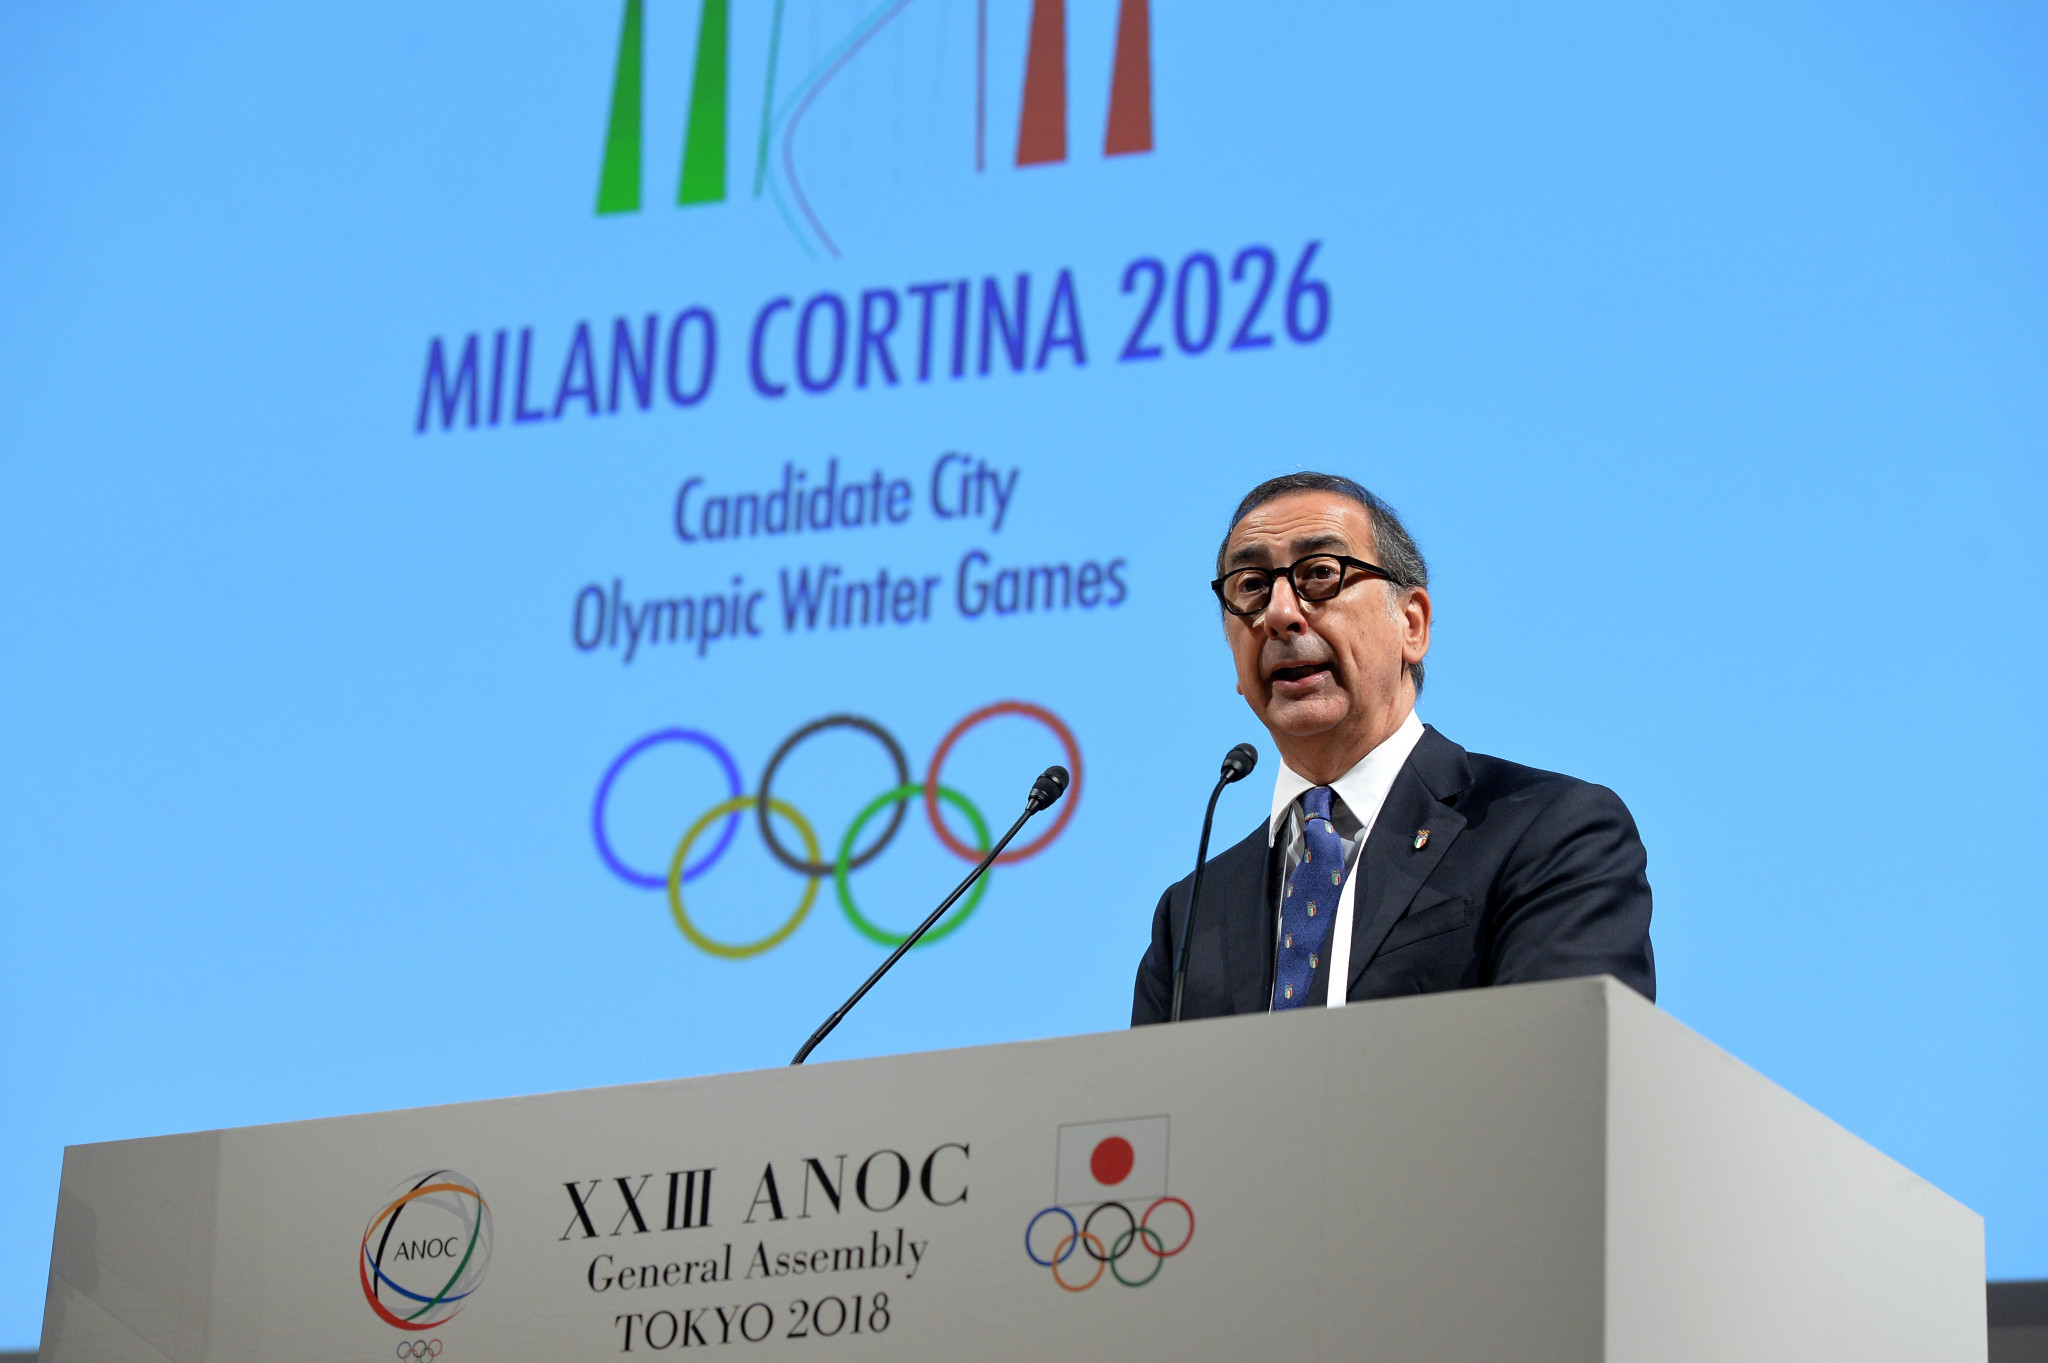 Stockholm Åre in a two-horse race for the 2026 Winter Olympic Games with Milan Cortina ©Getty Images